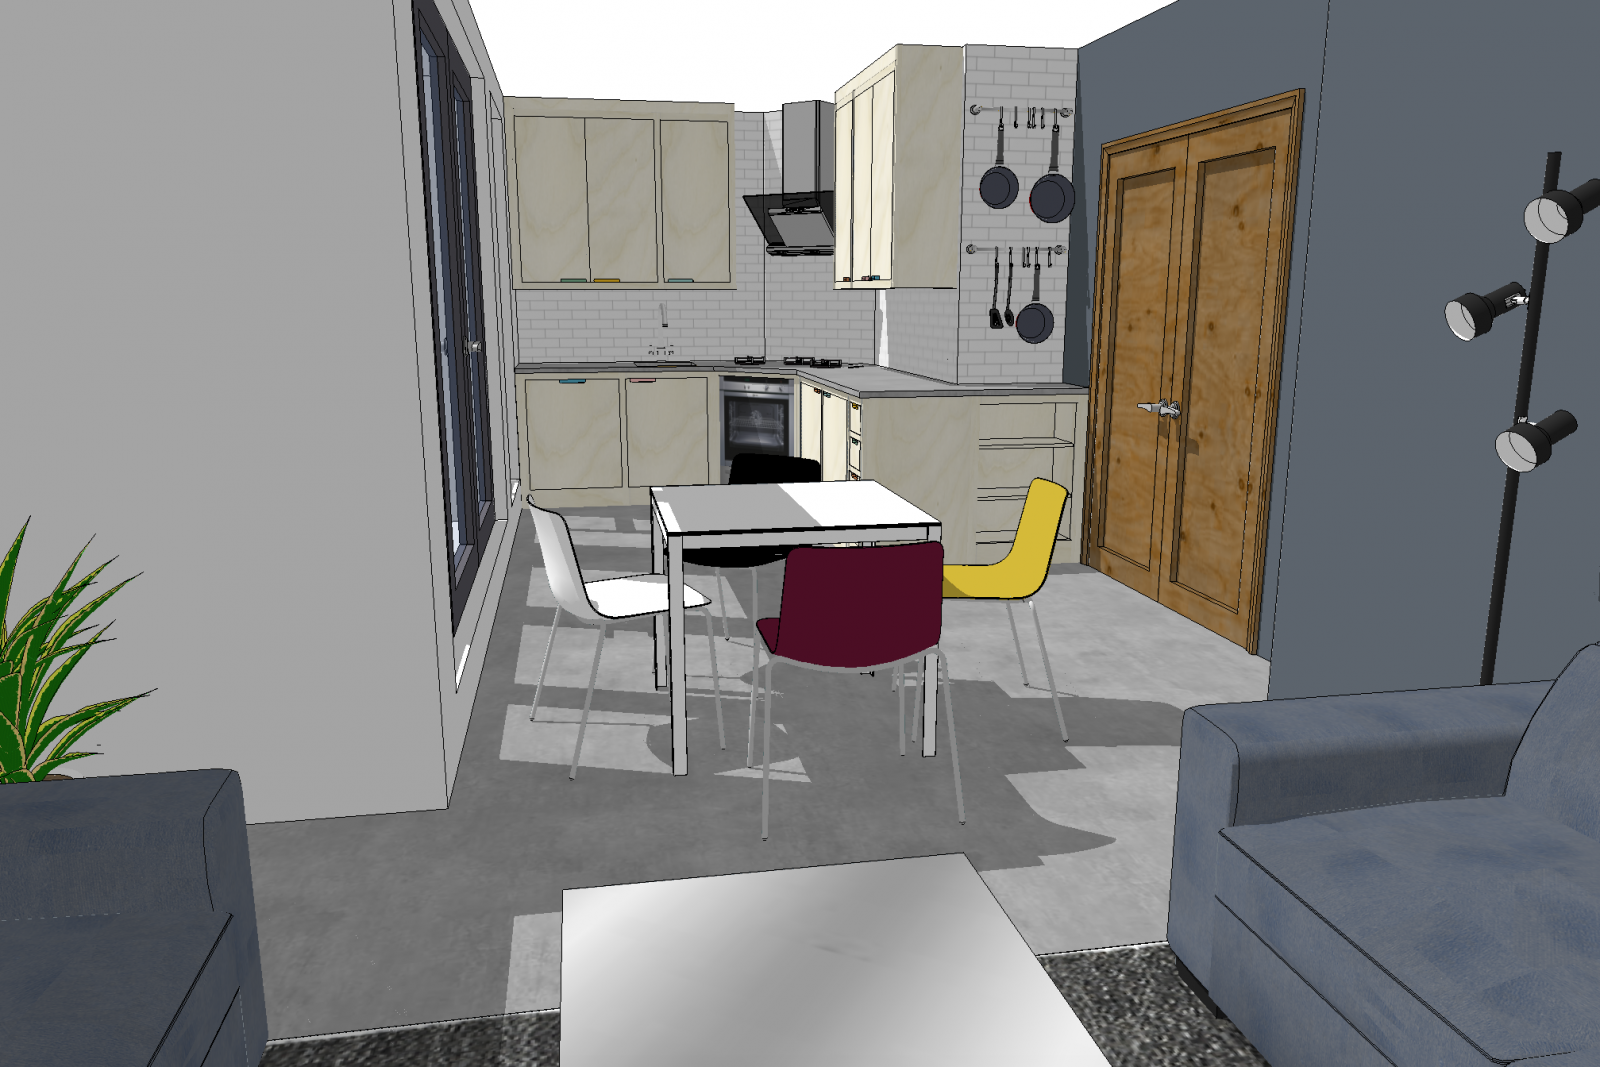 Design example of how best to utilise a small kitchen space